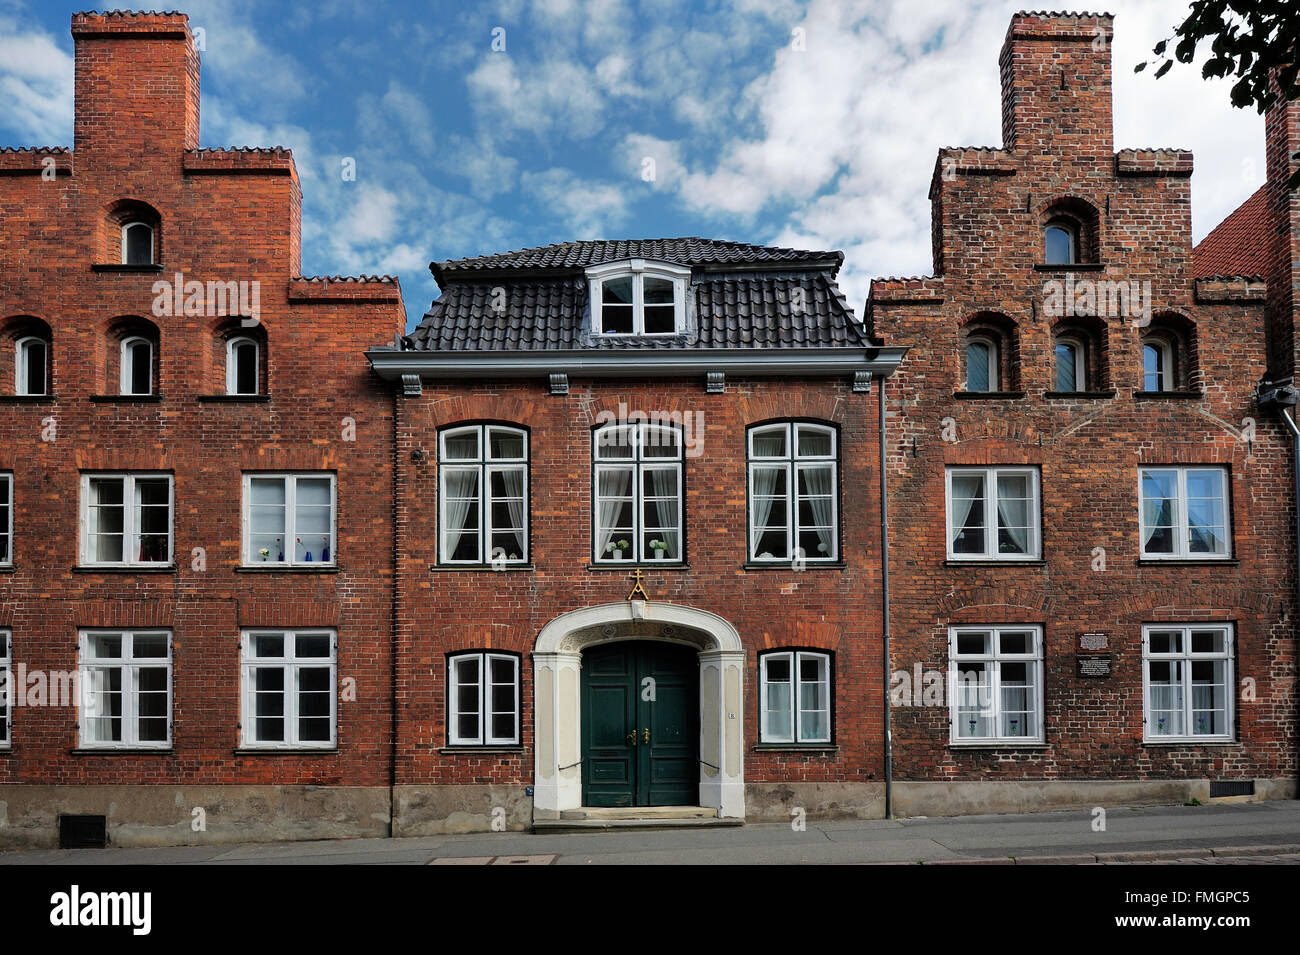 facade of traditional buildings, Mengstrasse, Lubeck, Germany - Stock Image